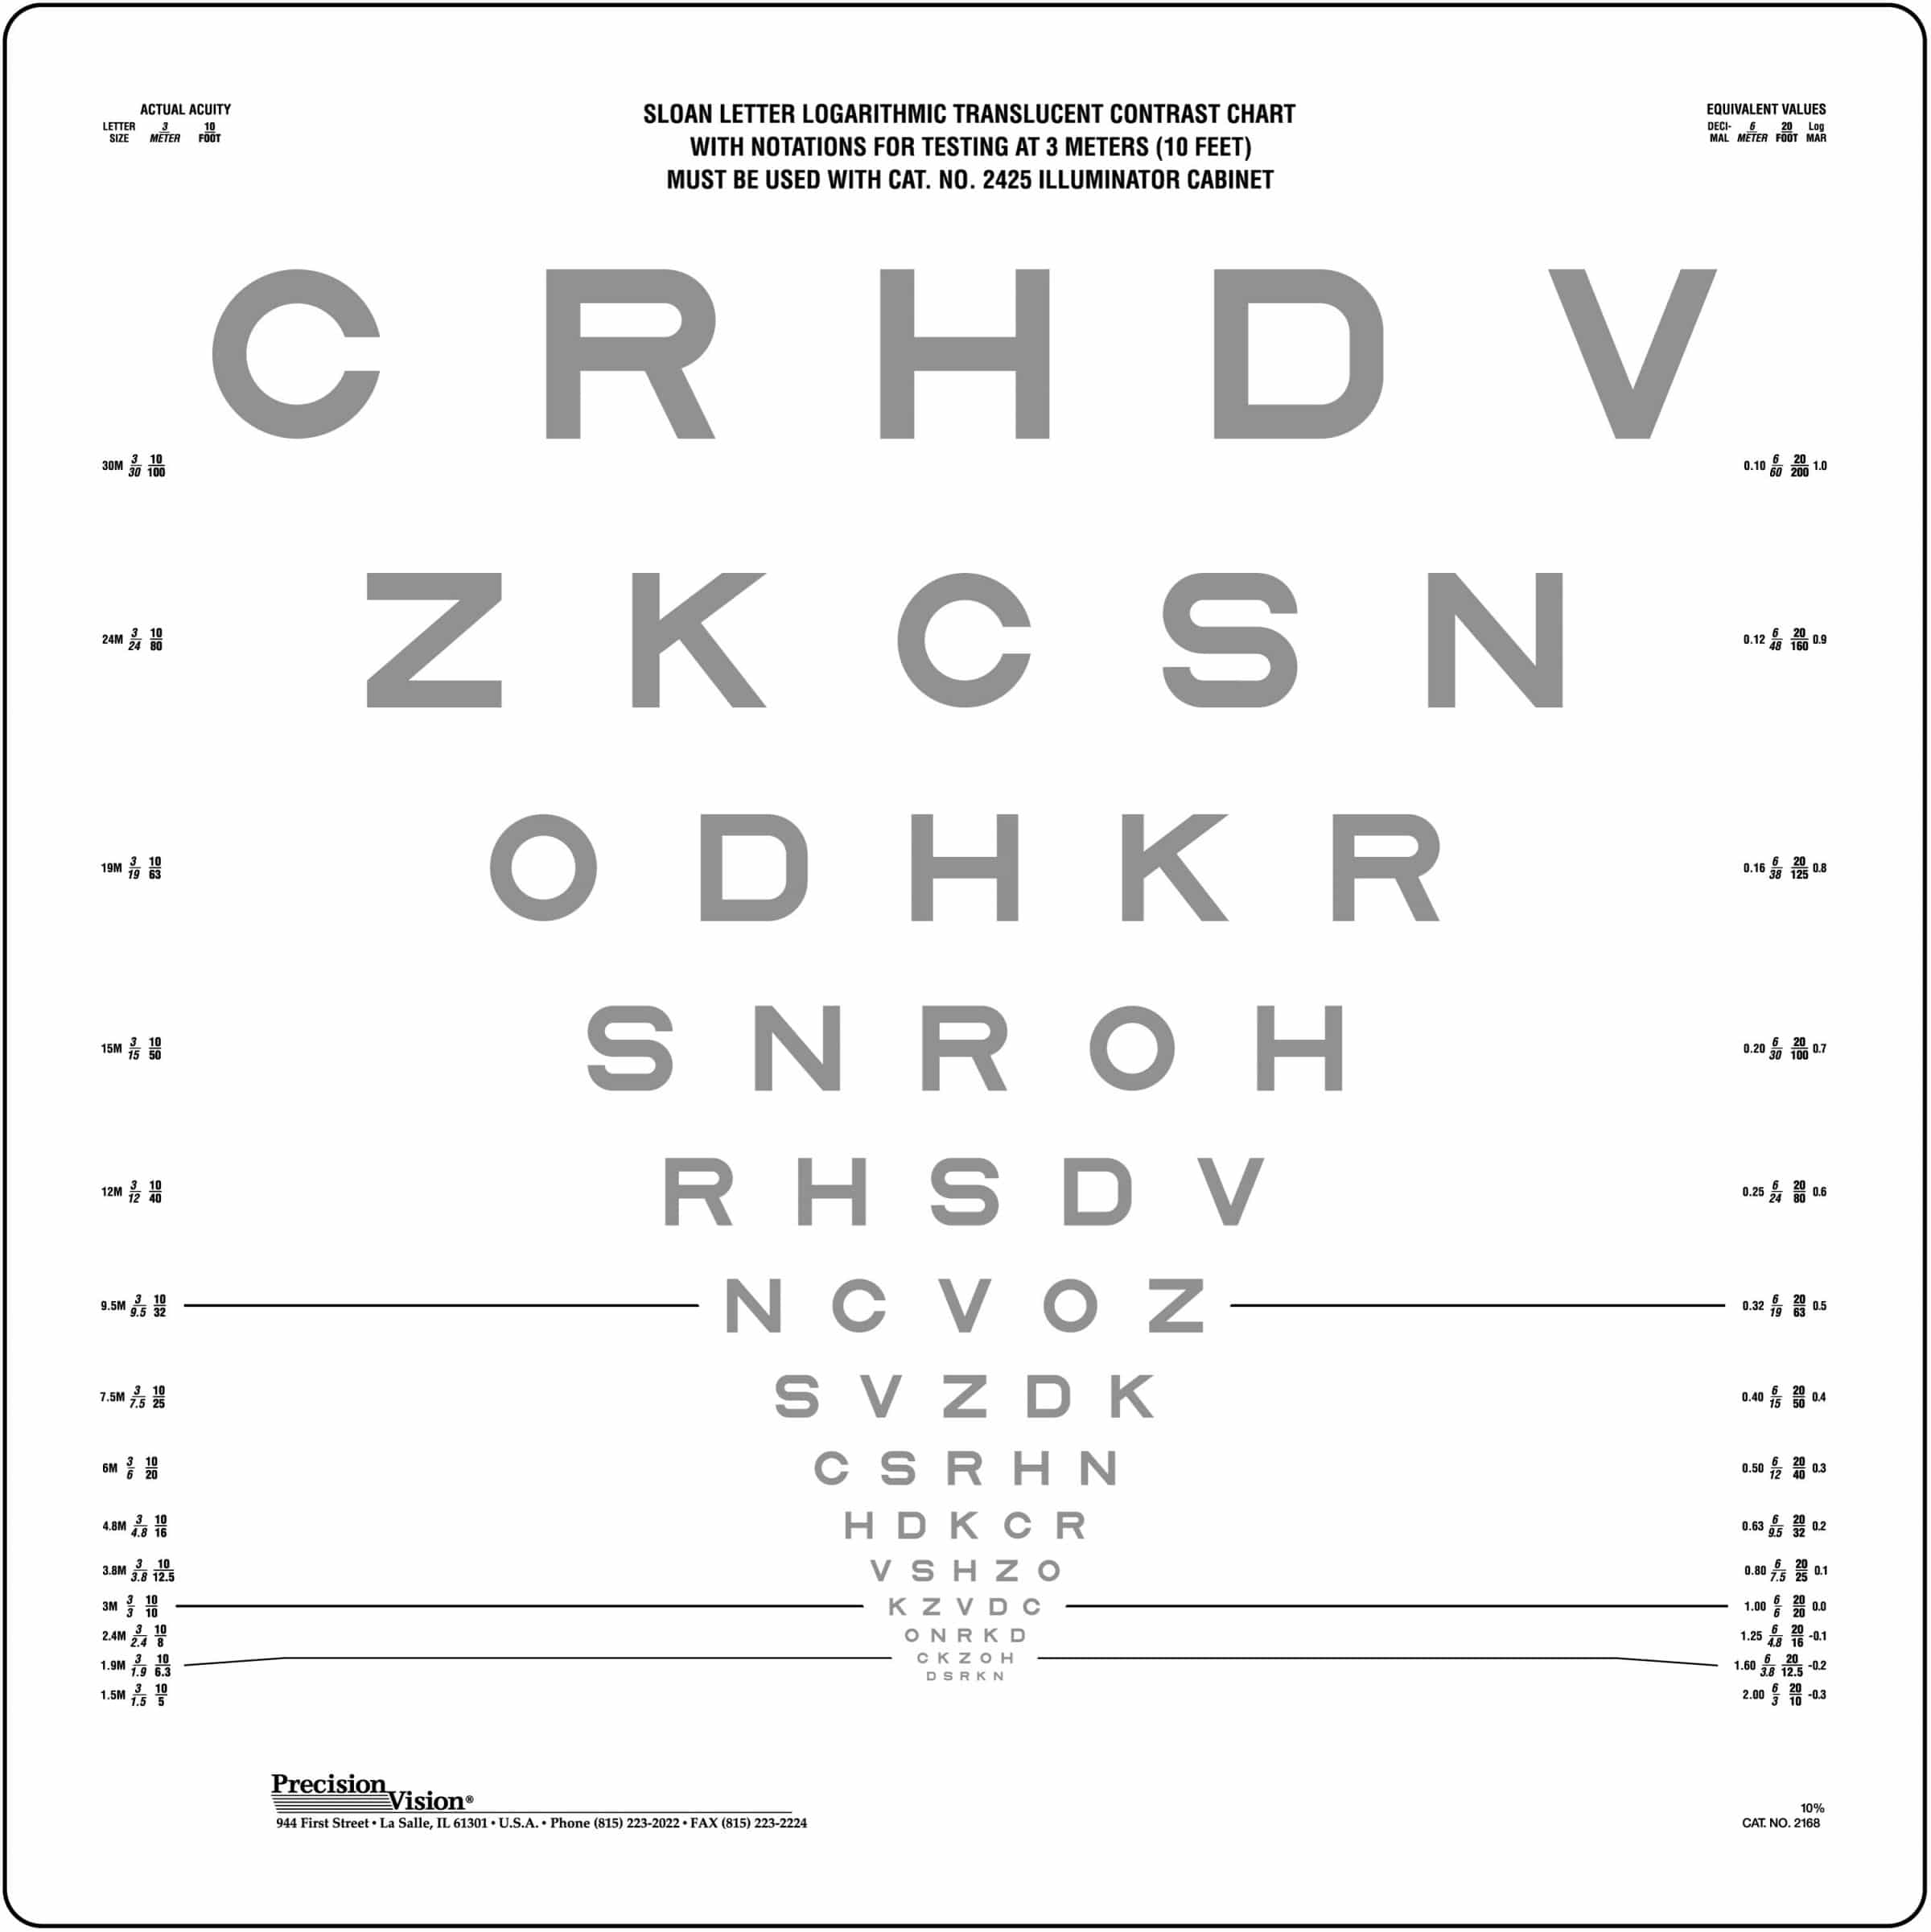 3 meter 10 ft low contrast etdrs eye charts precision vision 9500 select options nvjuhfo Image collections